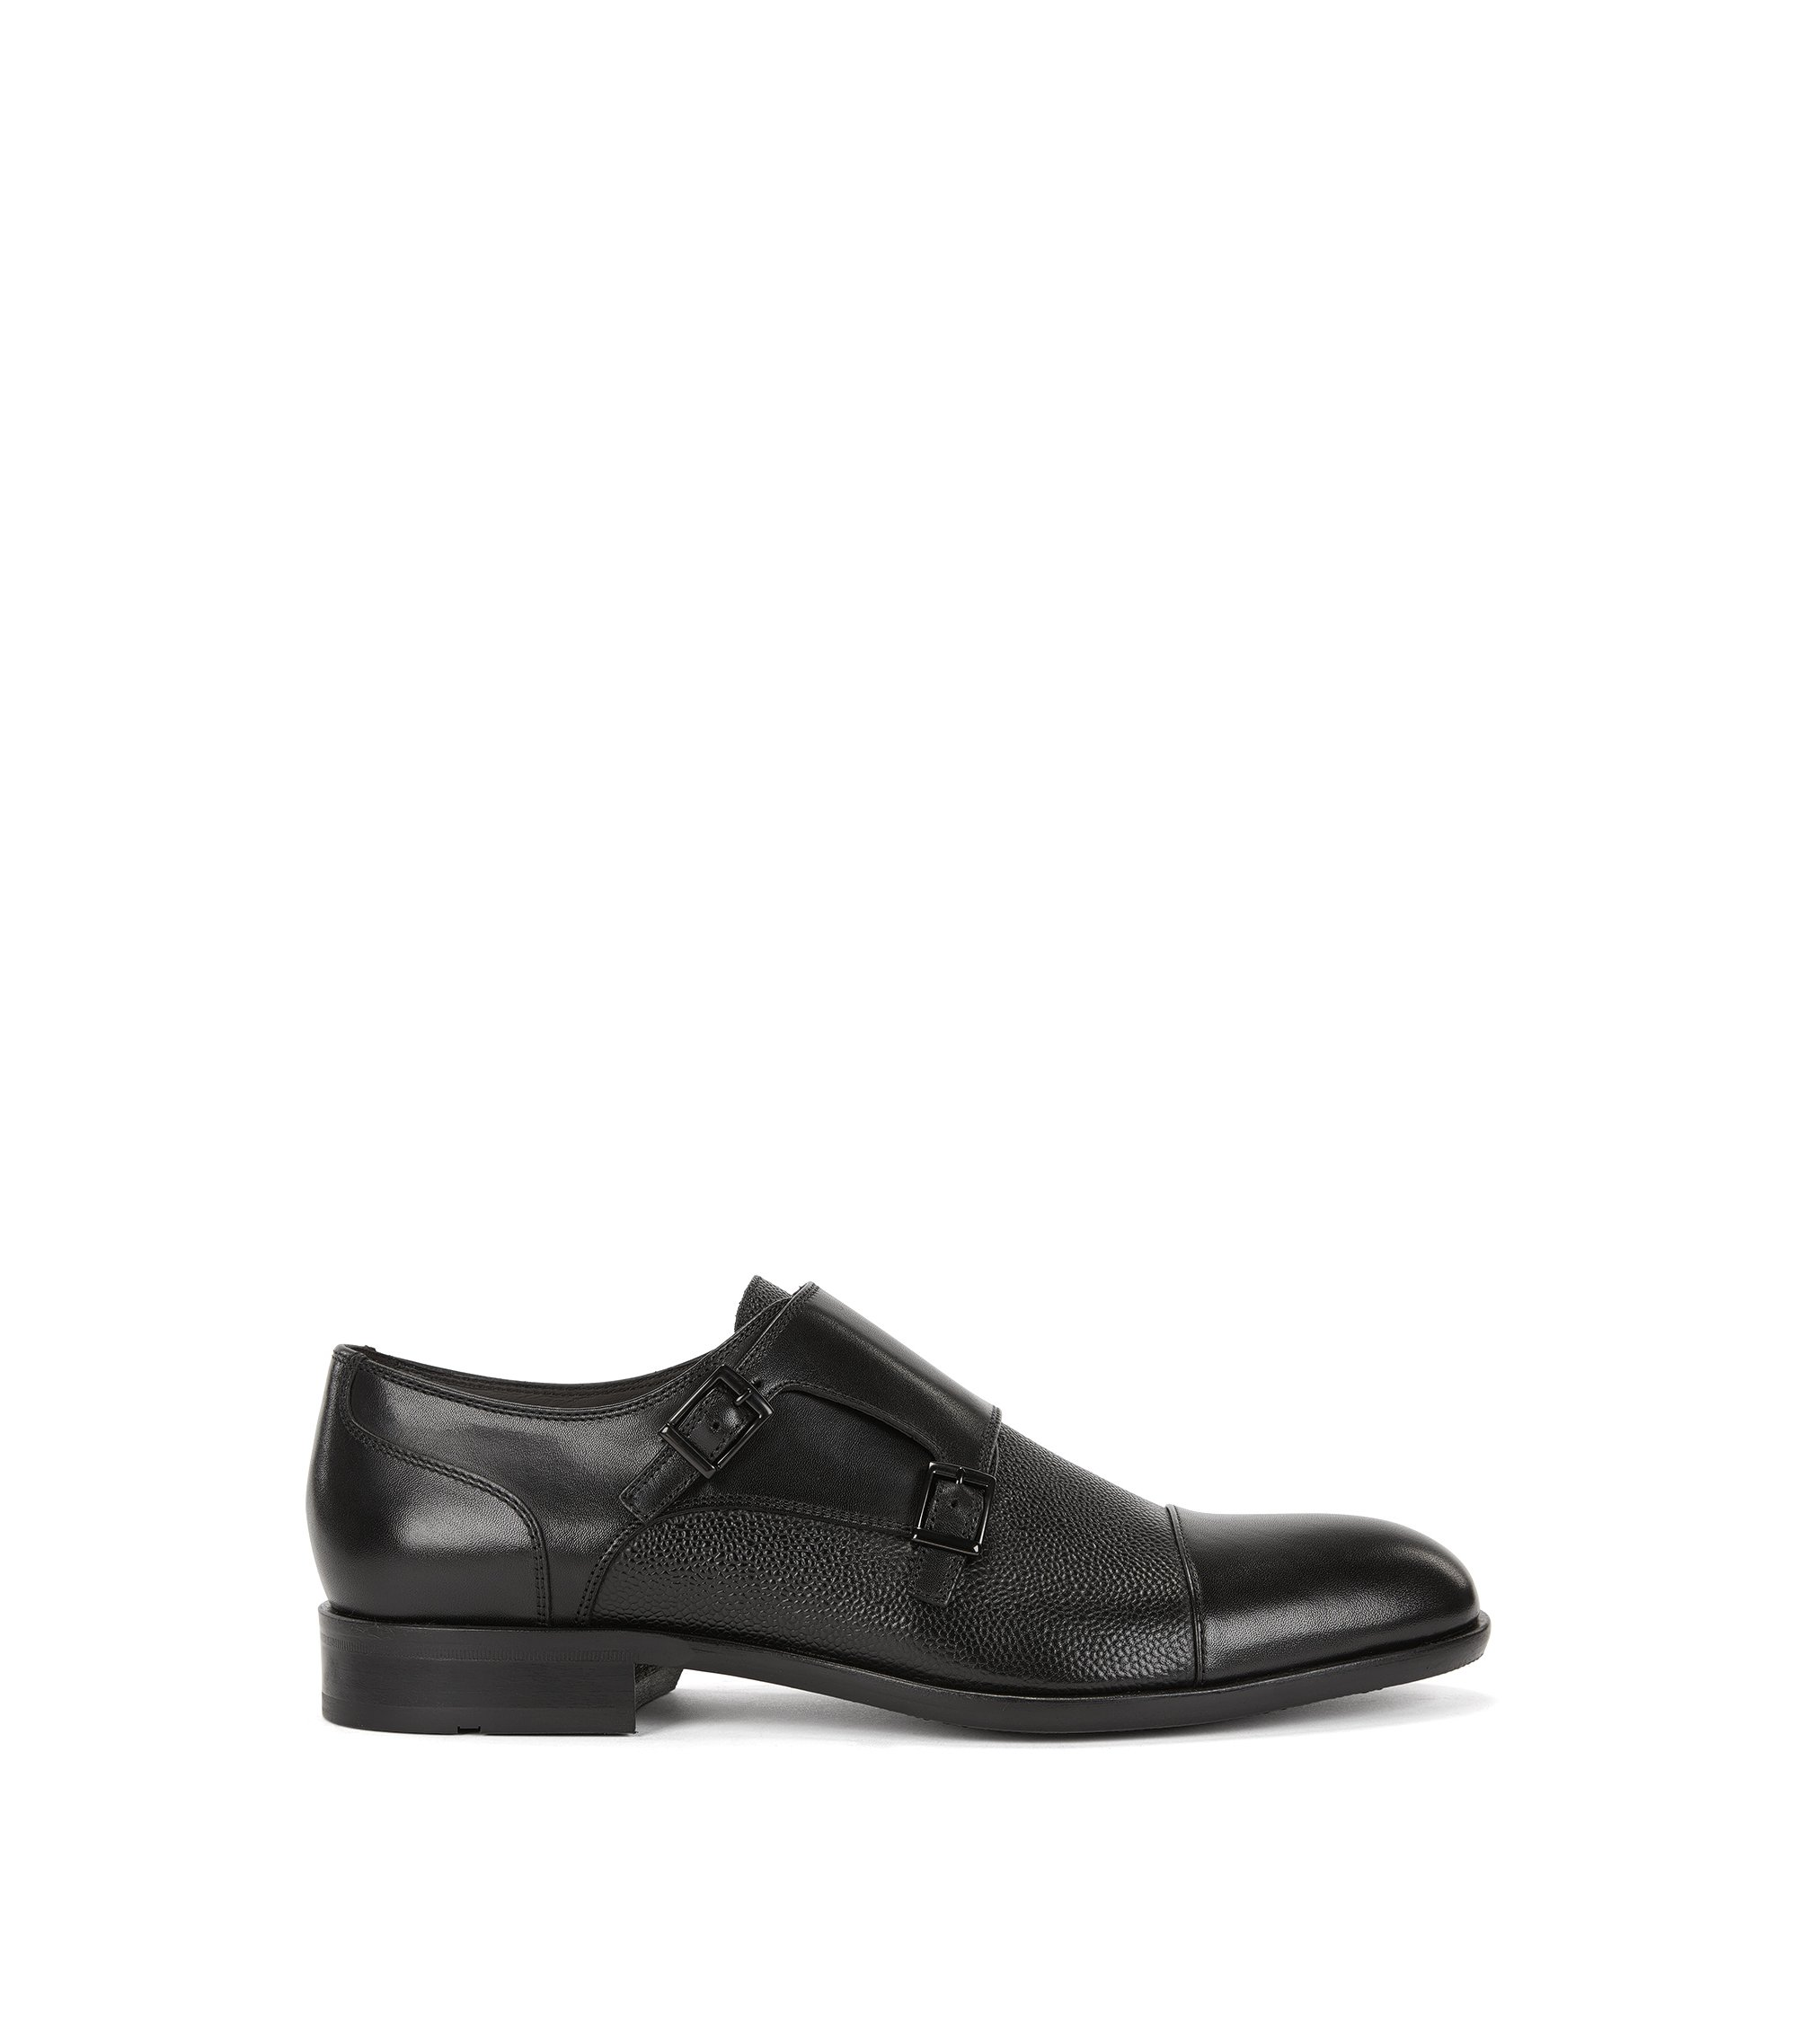 Leather monk shoes with embossed details, Black